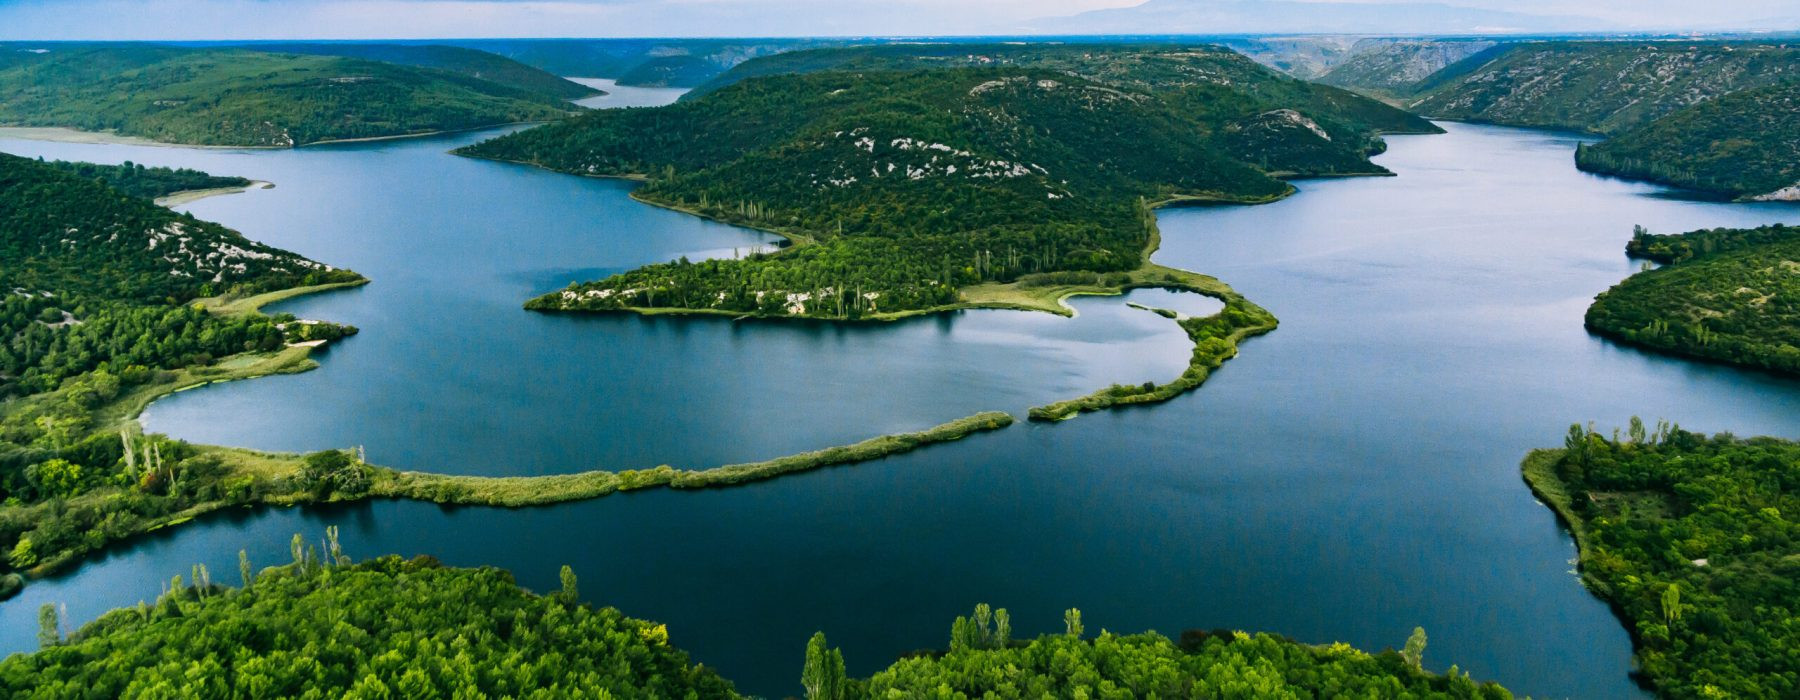 Aerial view of blue lakes and green forest. Krka river national park, Dalmatia, Croatia